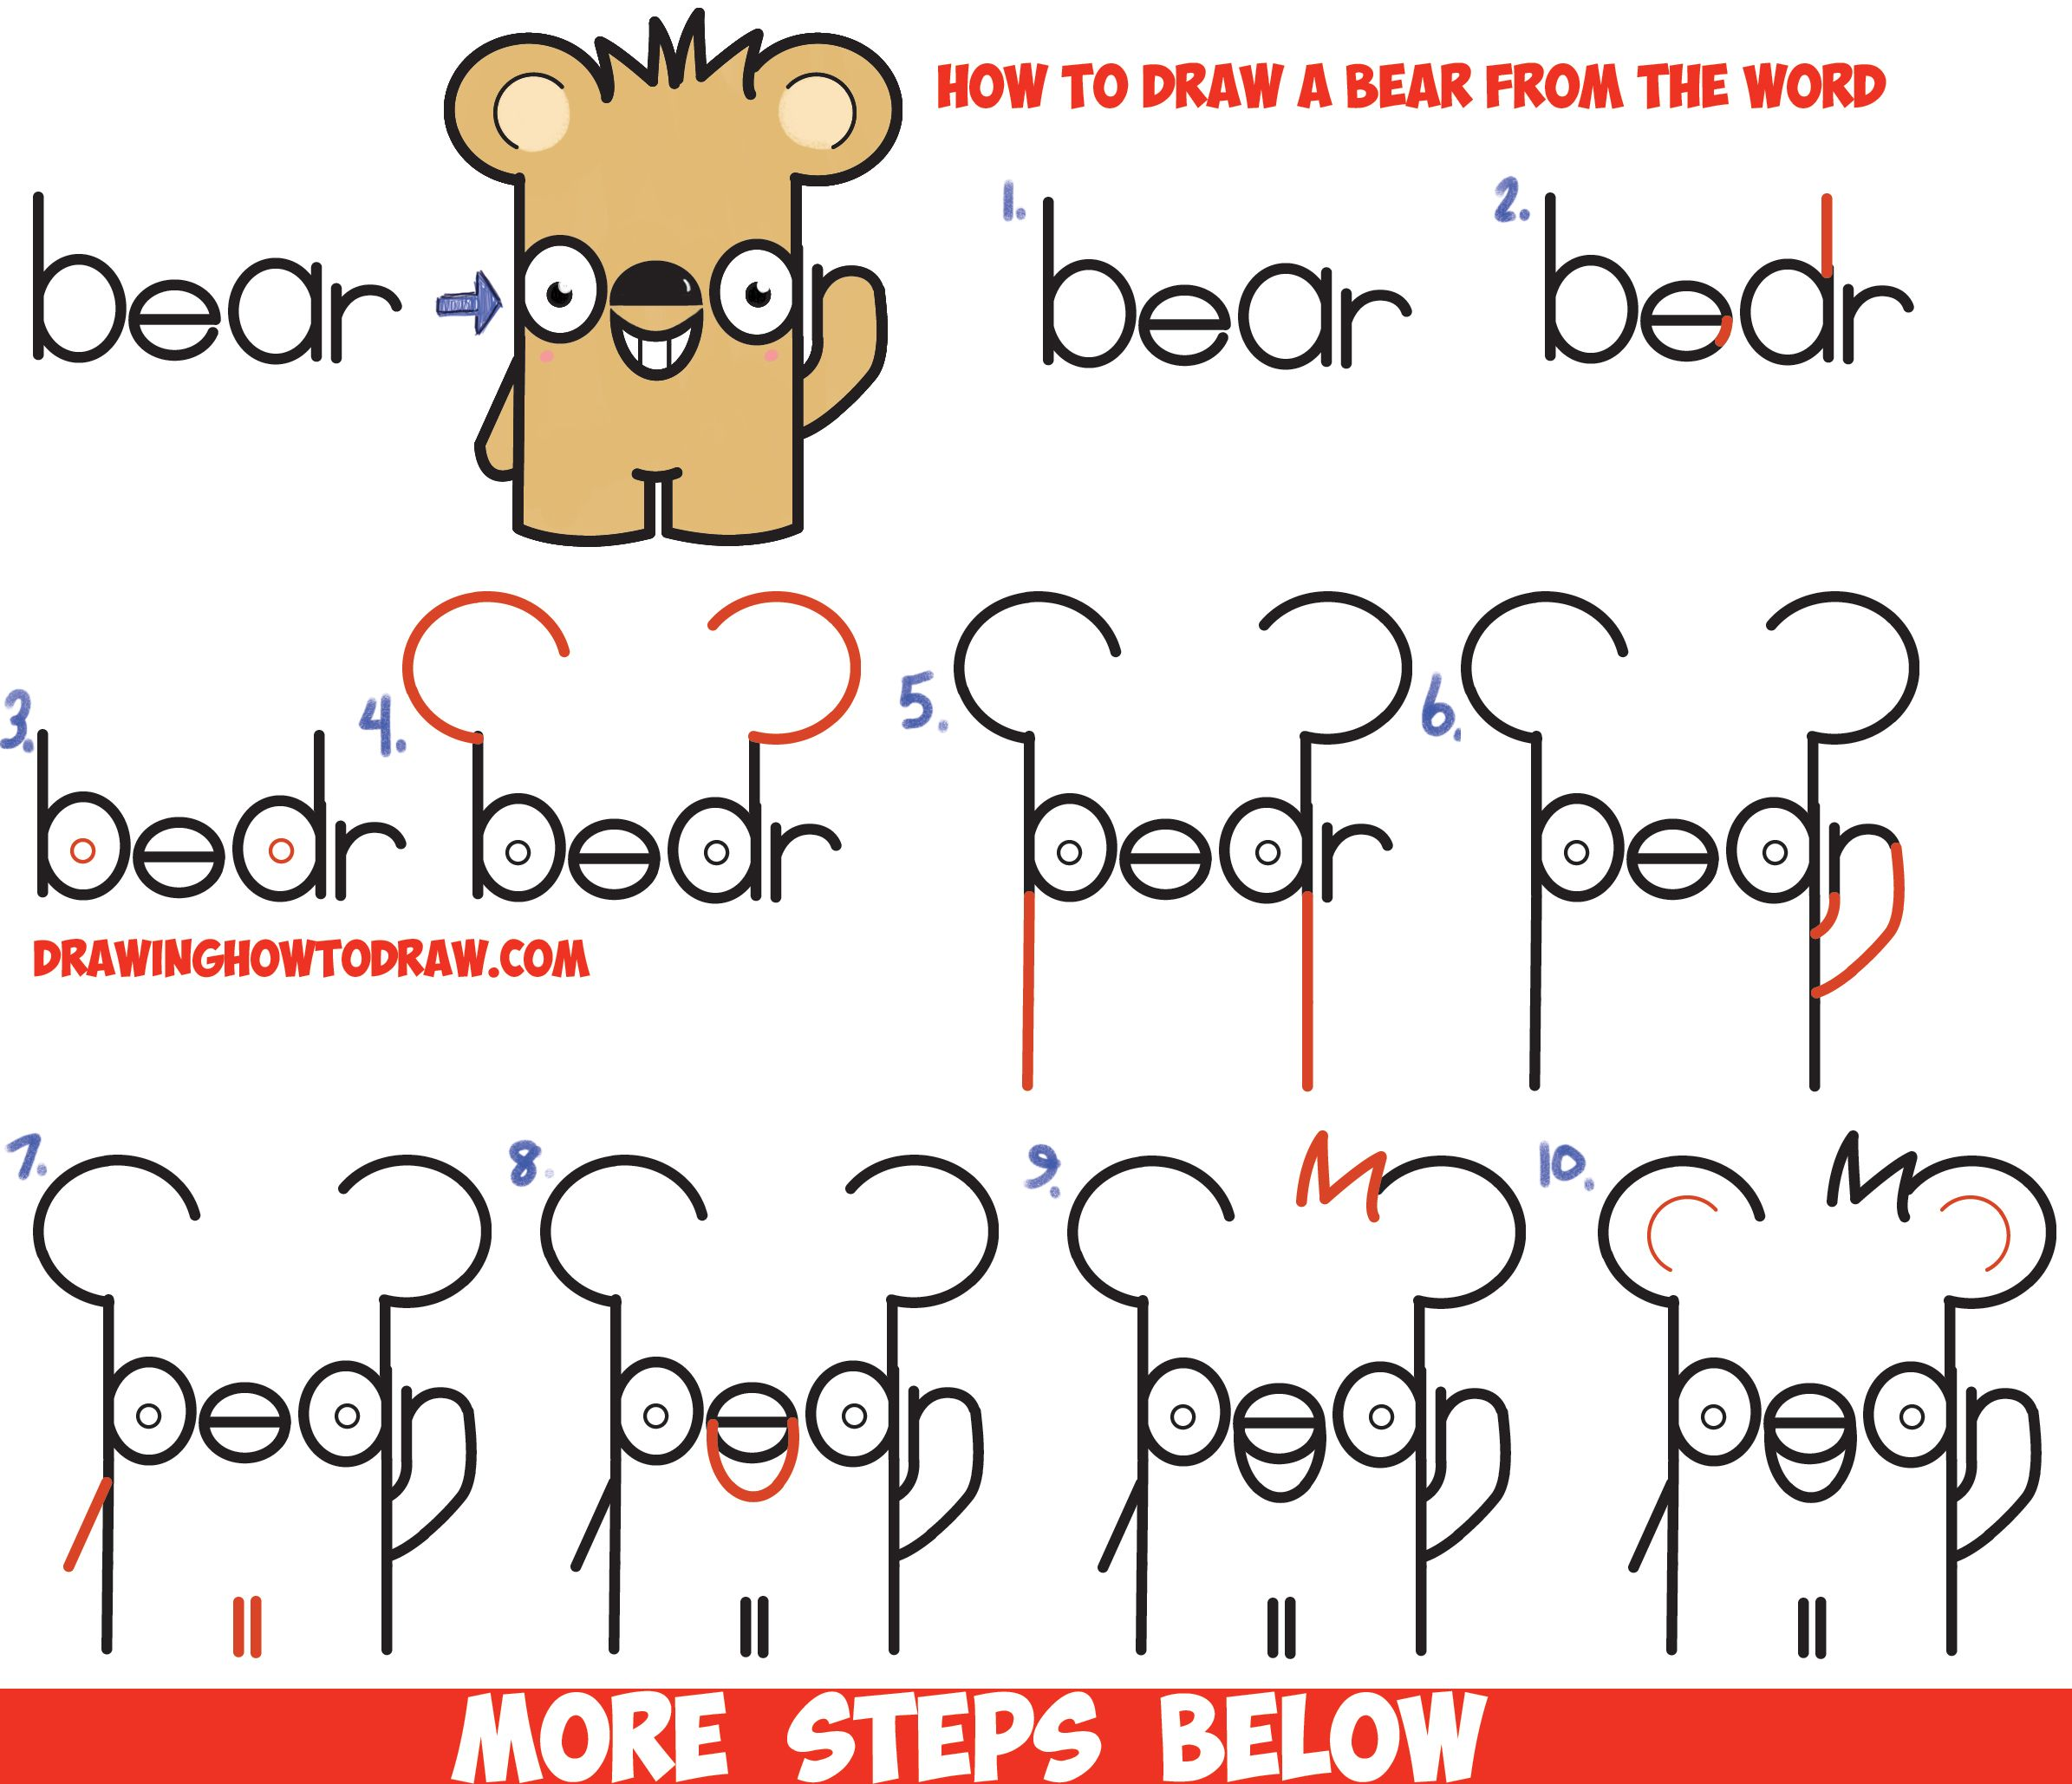 Uncategorized How To Draw A Bear For Kids how to draw cute cartoon kawaii bear from the word easy step by drawing tutorial for kids illustrations